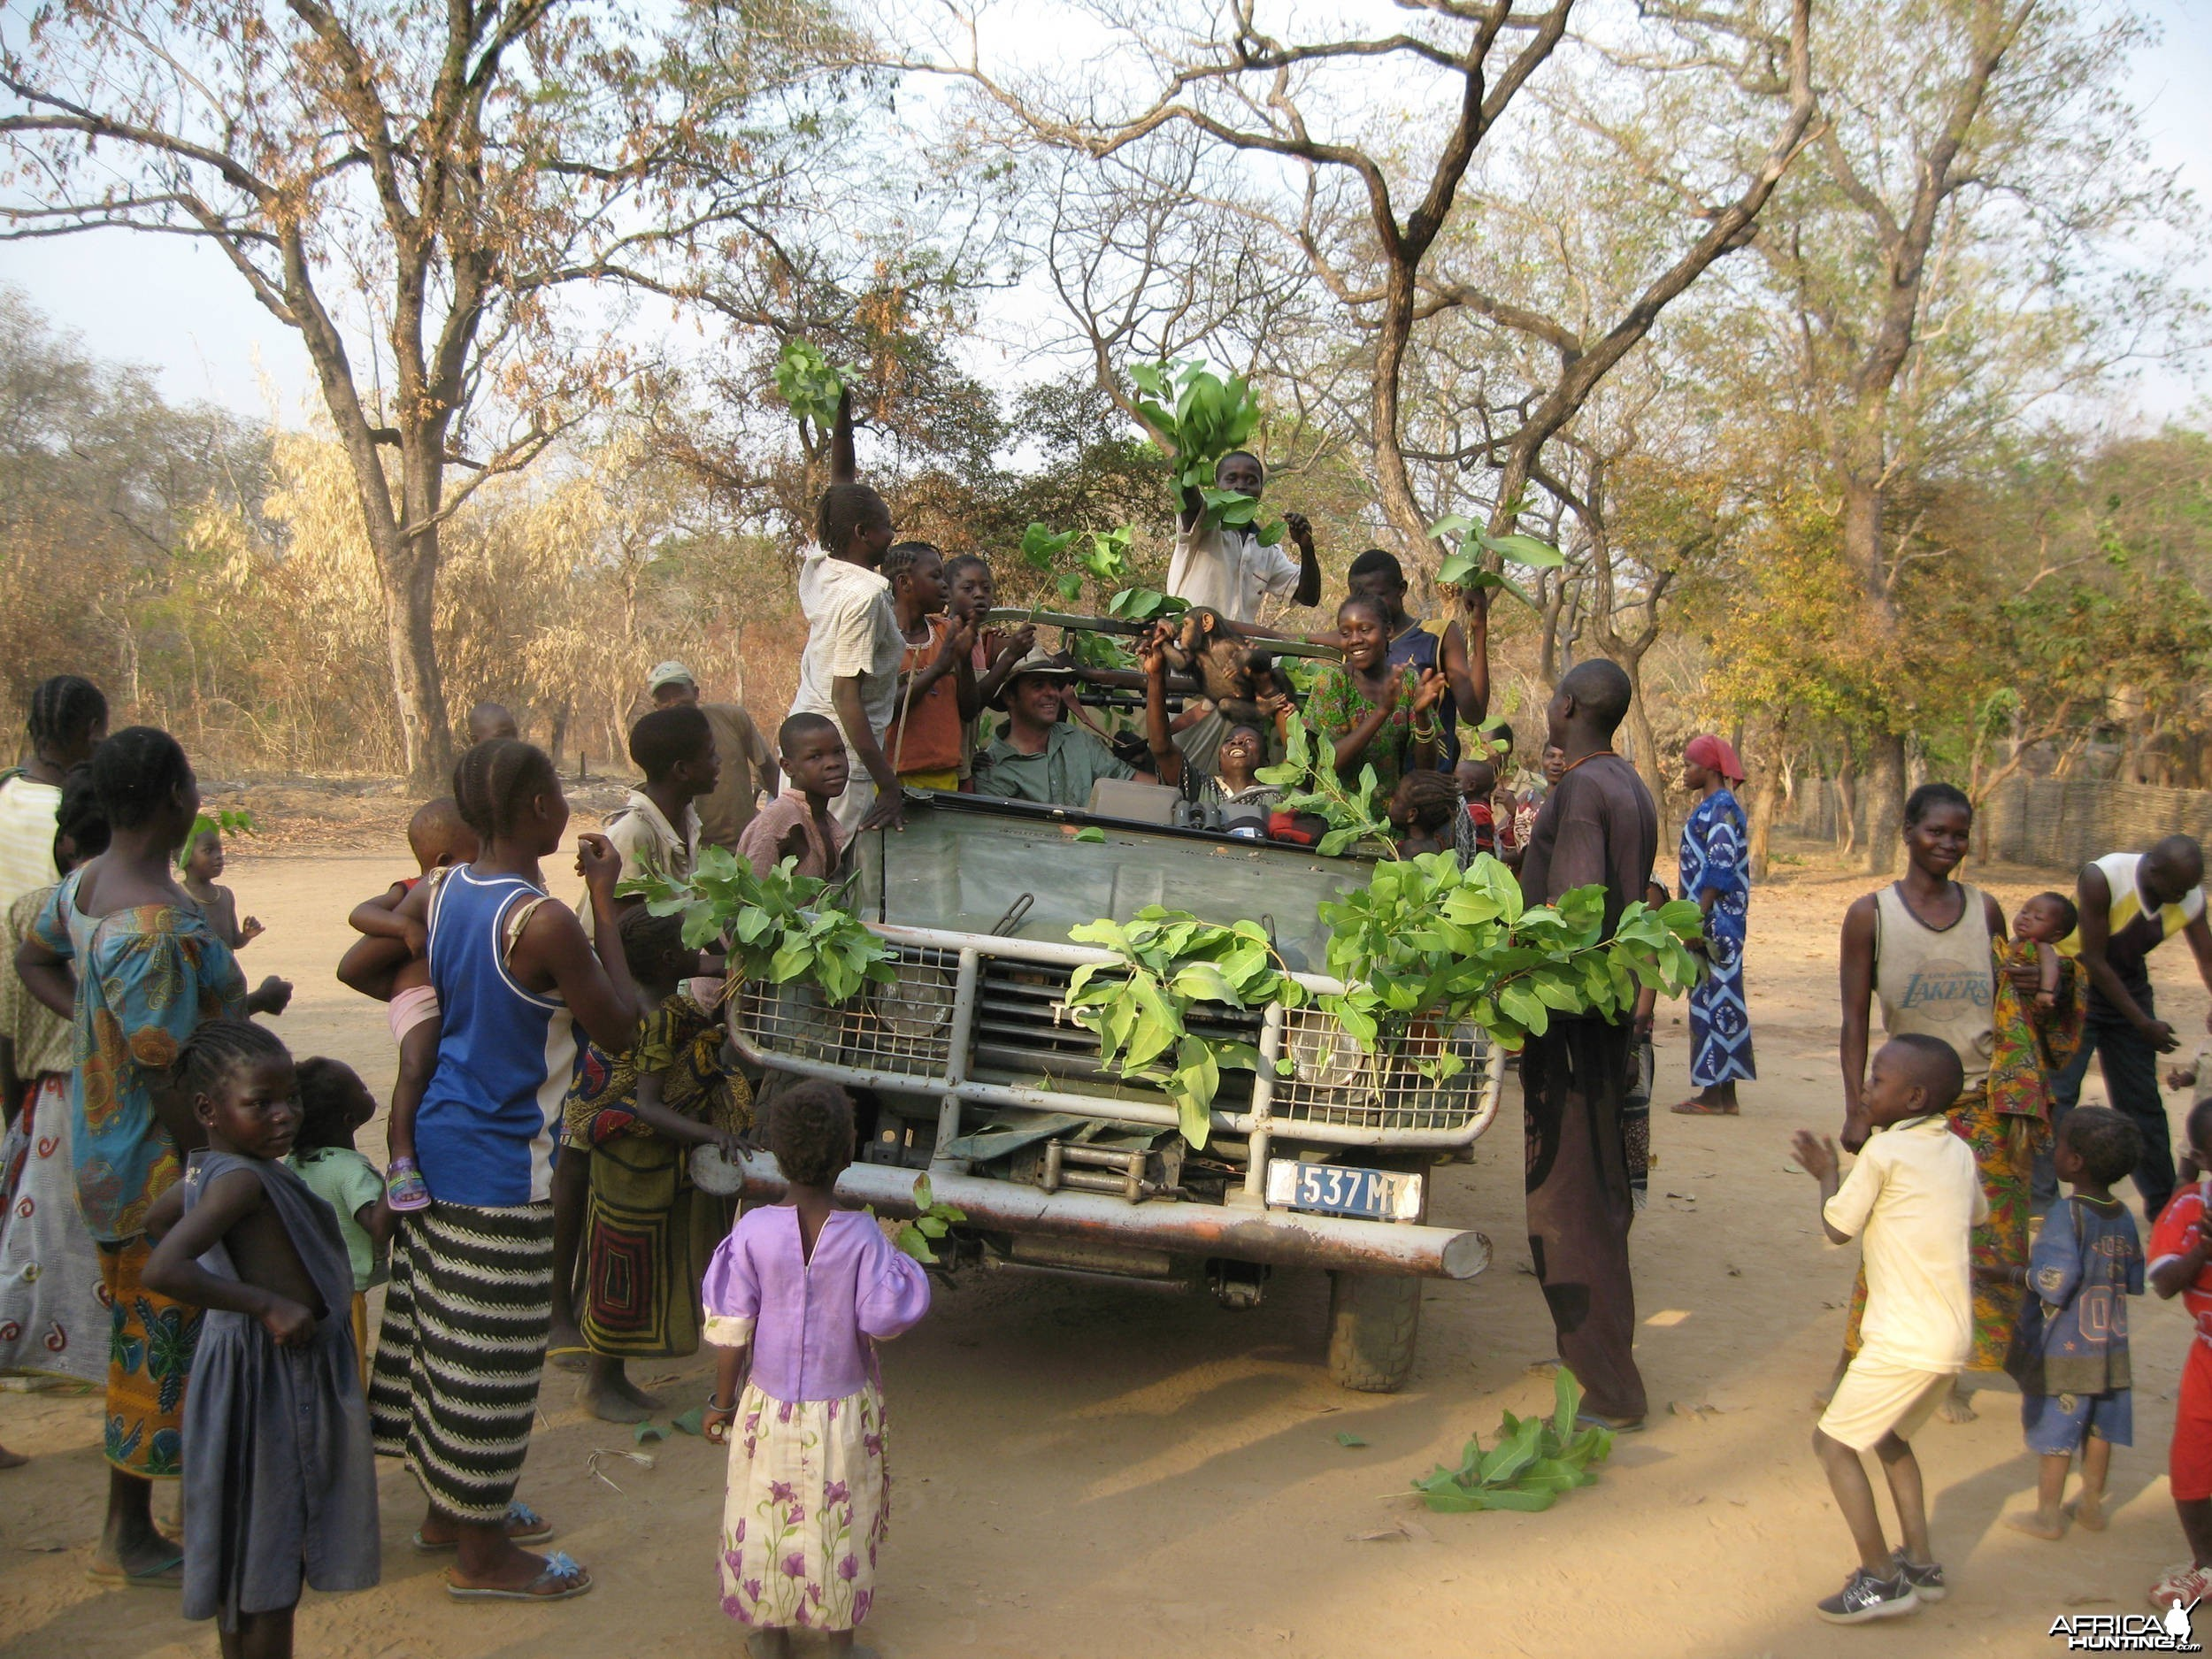 The Chimp is part of the celebration in CAR